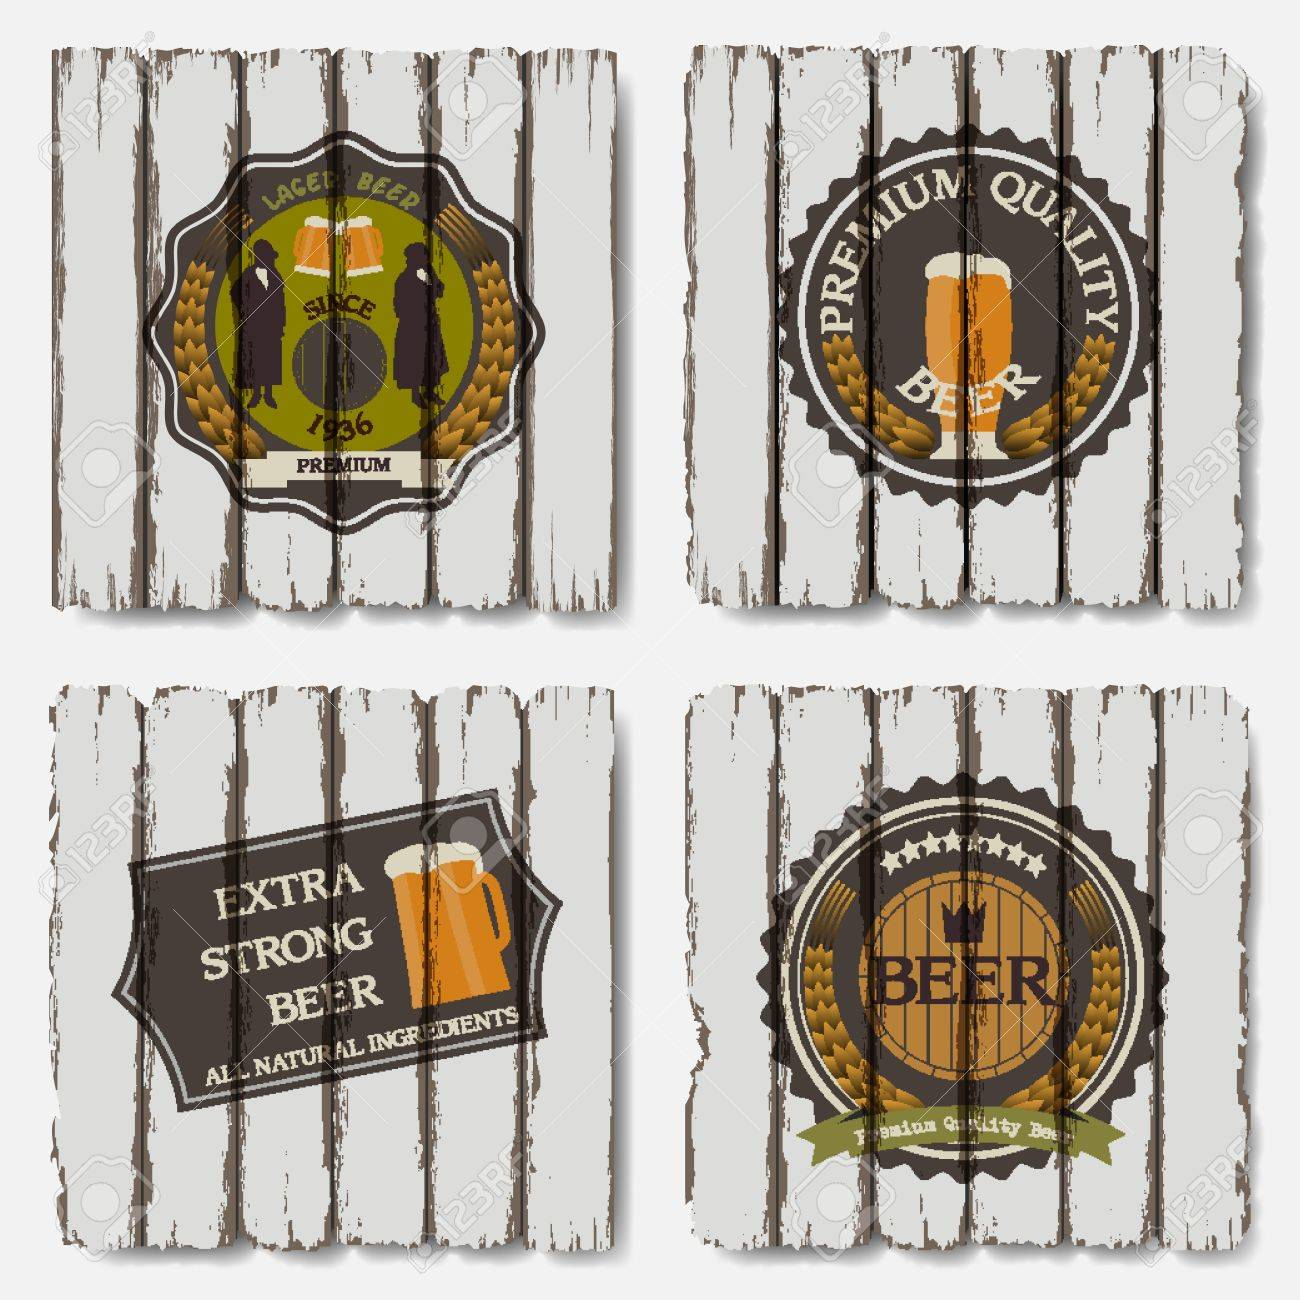 Beer badges and labels on old wood background Stock Vector - 14920874